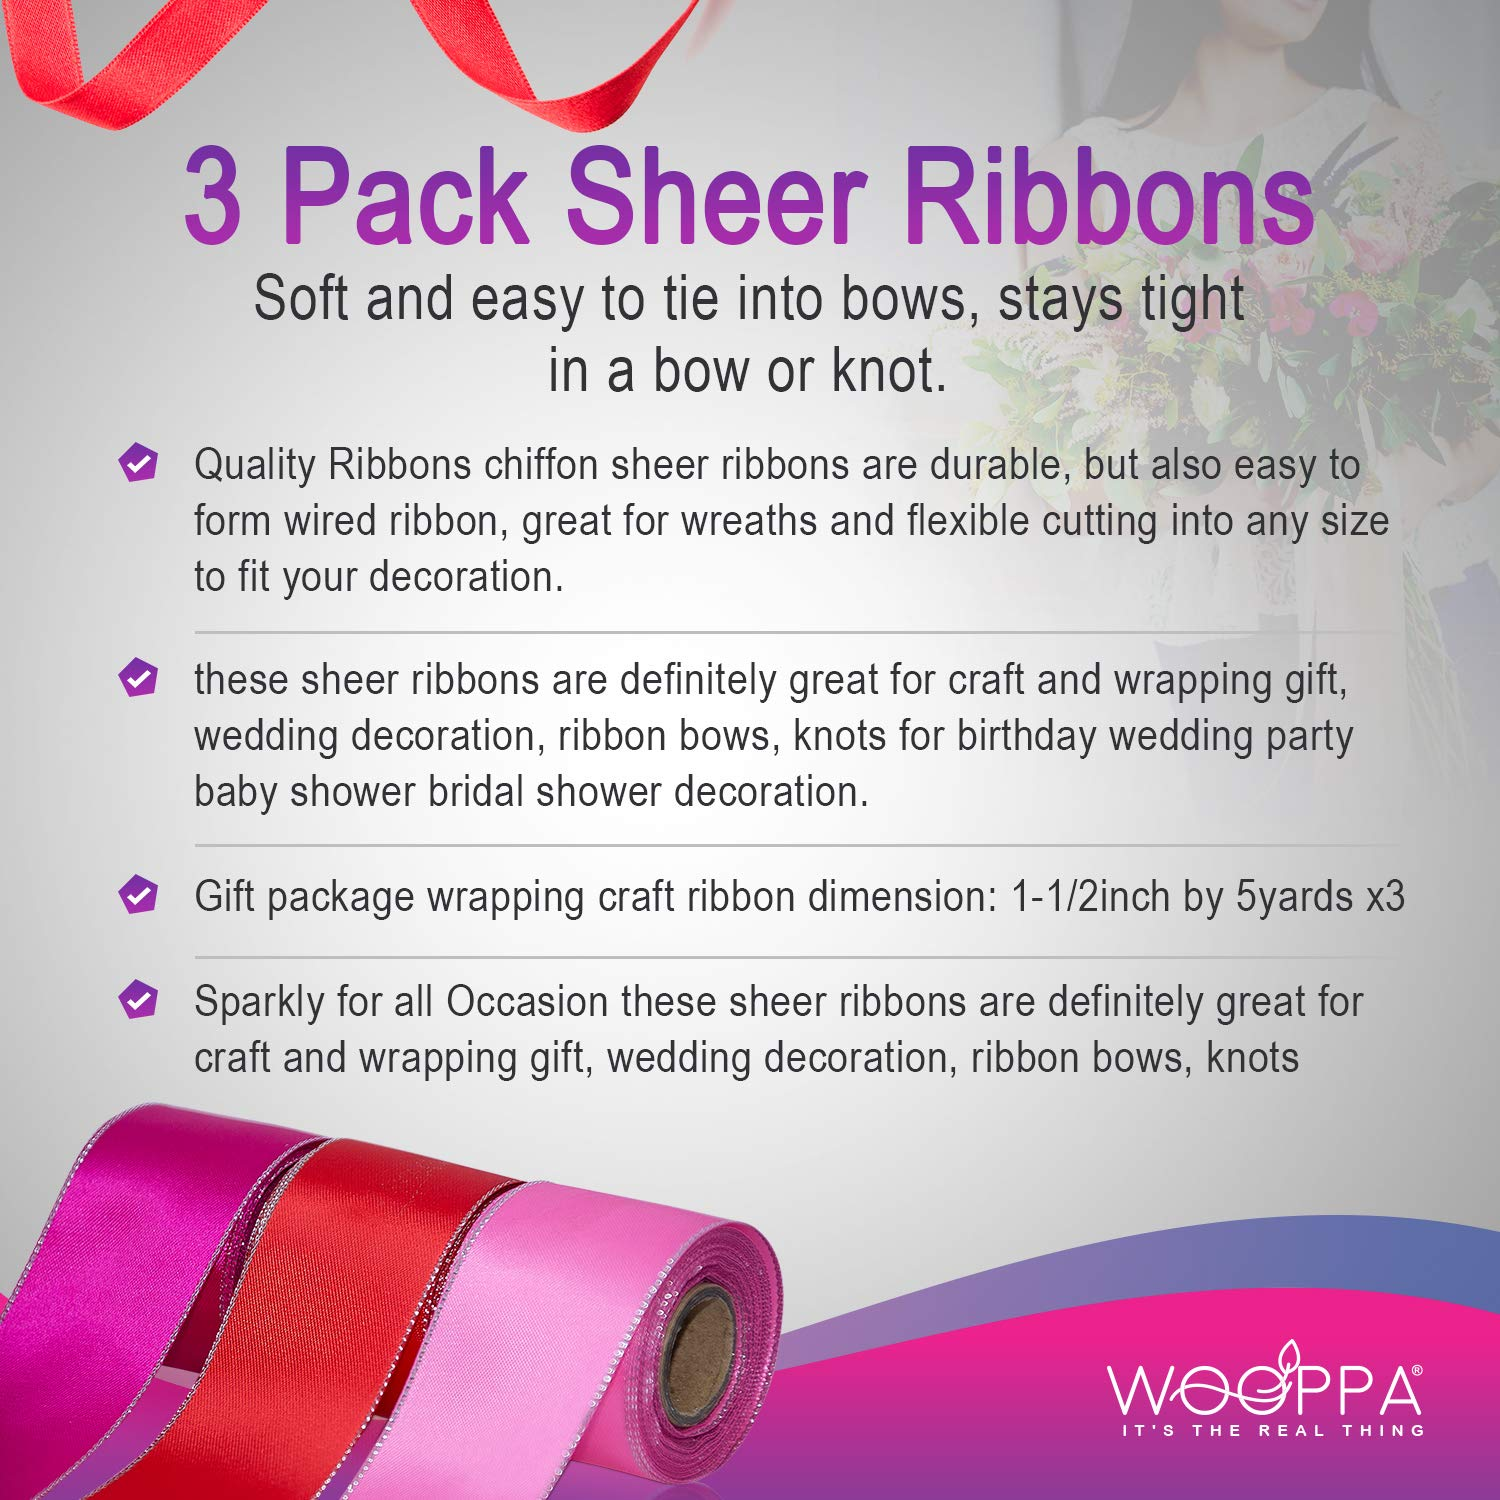 Wooppa 3pcs Sheer Chiffon Ribbon 1.5Inch/×5 Yards Dusty Rose Fading Ribbon Set for Wedding Gift Package Valentines Bouquets Wrapping Birthday Baby Shower Home Decor Wreath Decorations Fabric